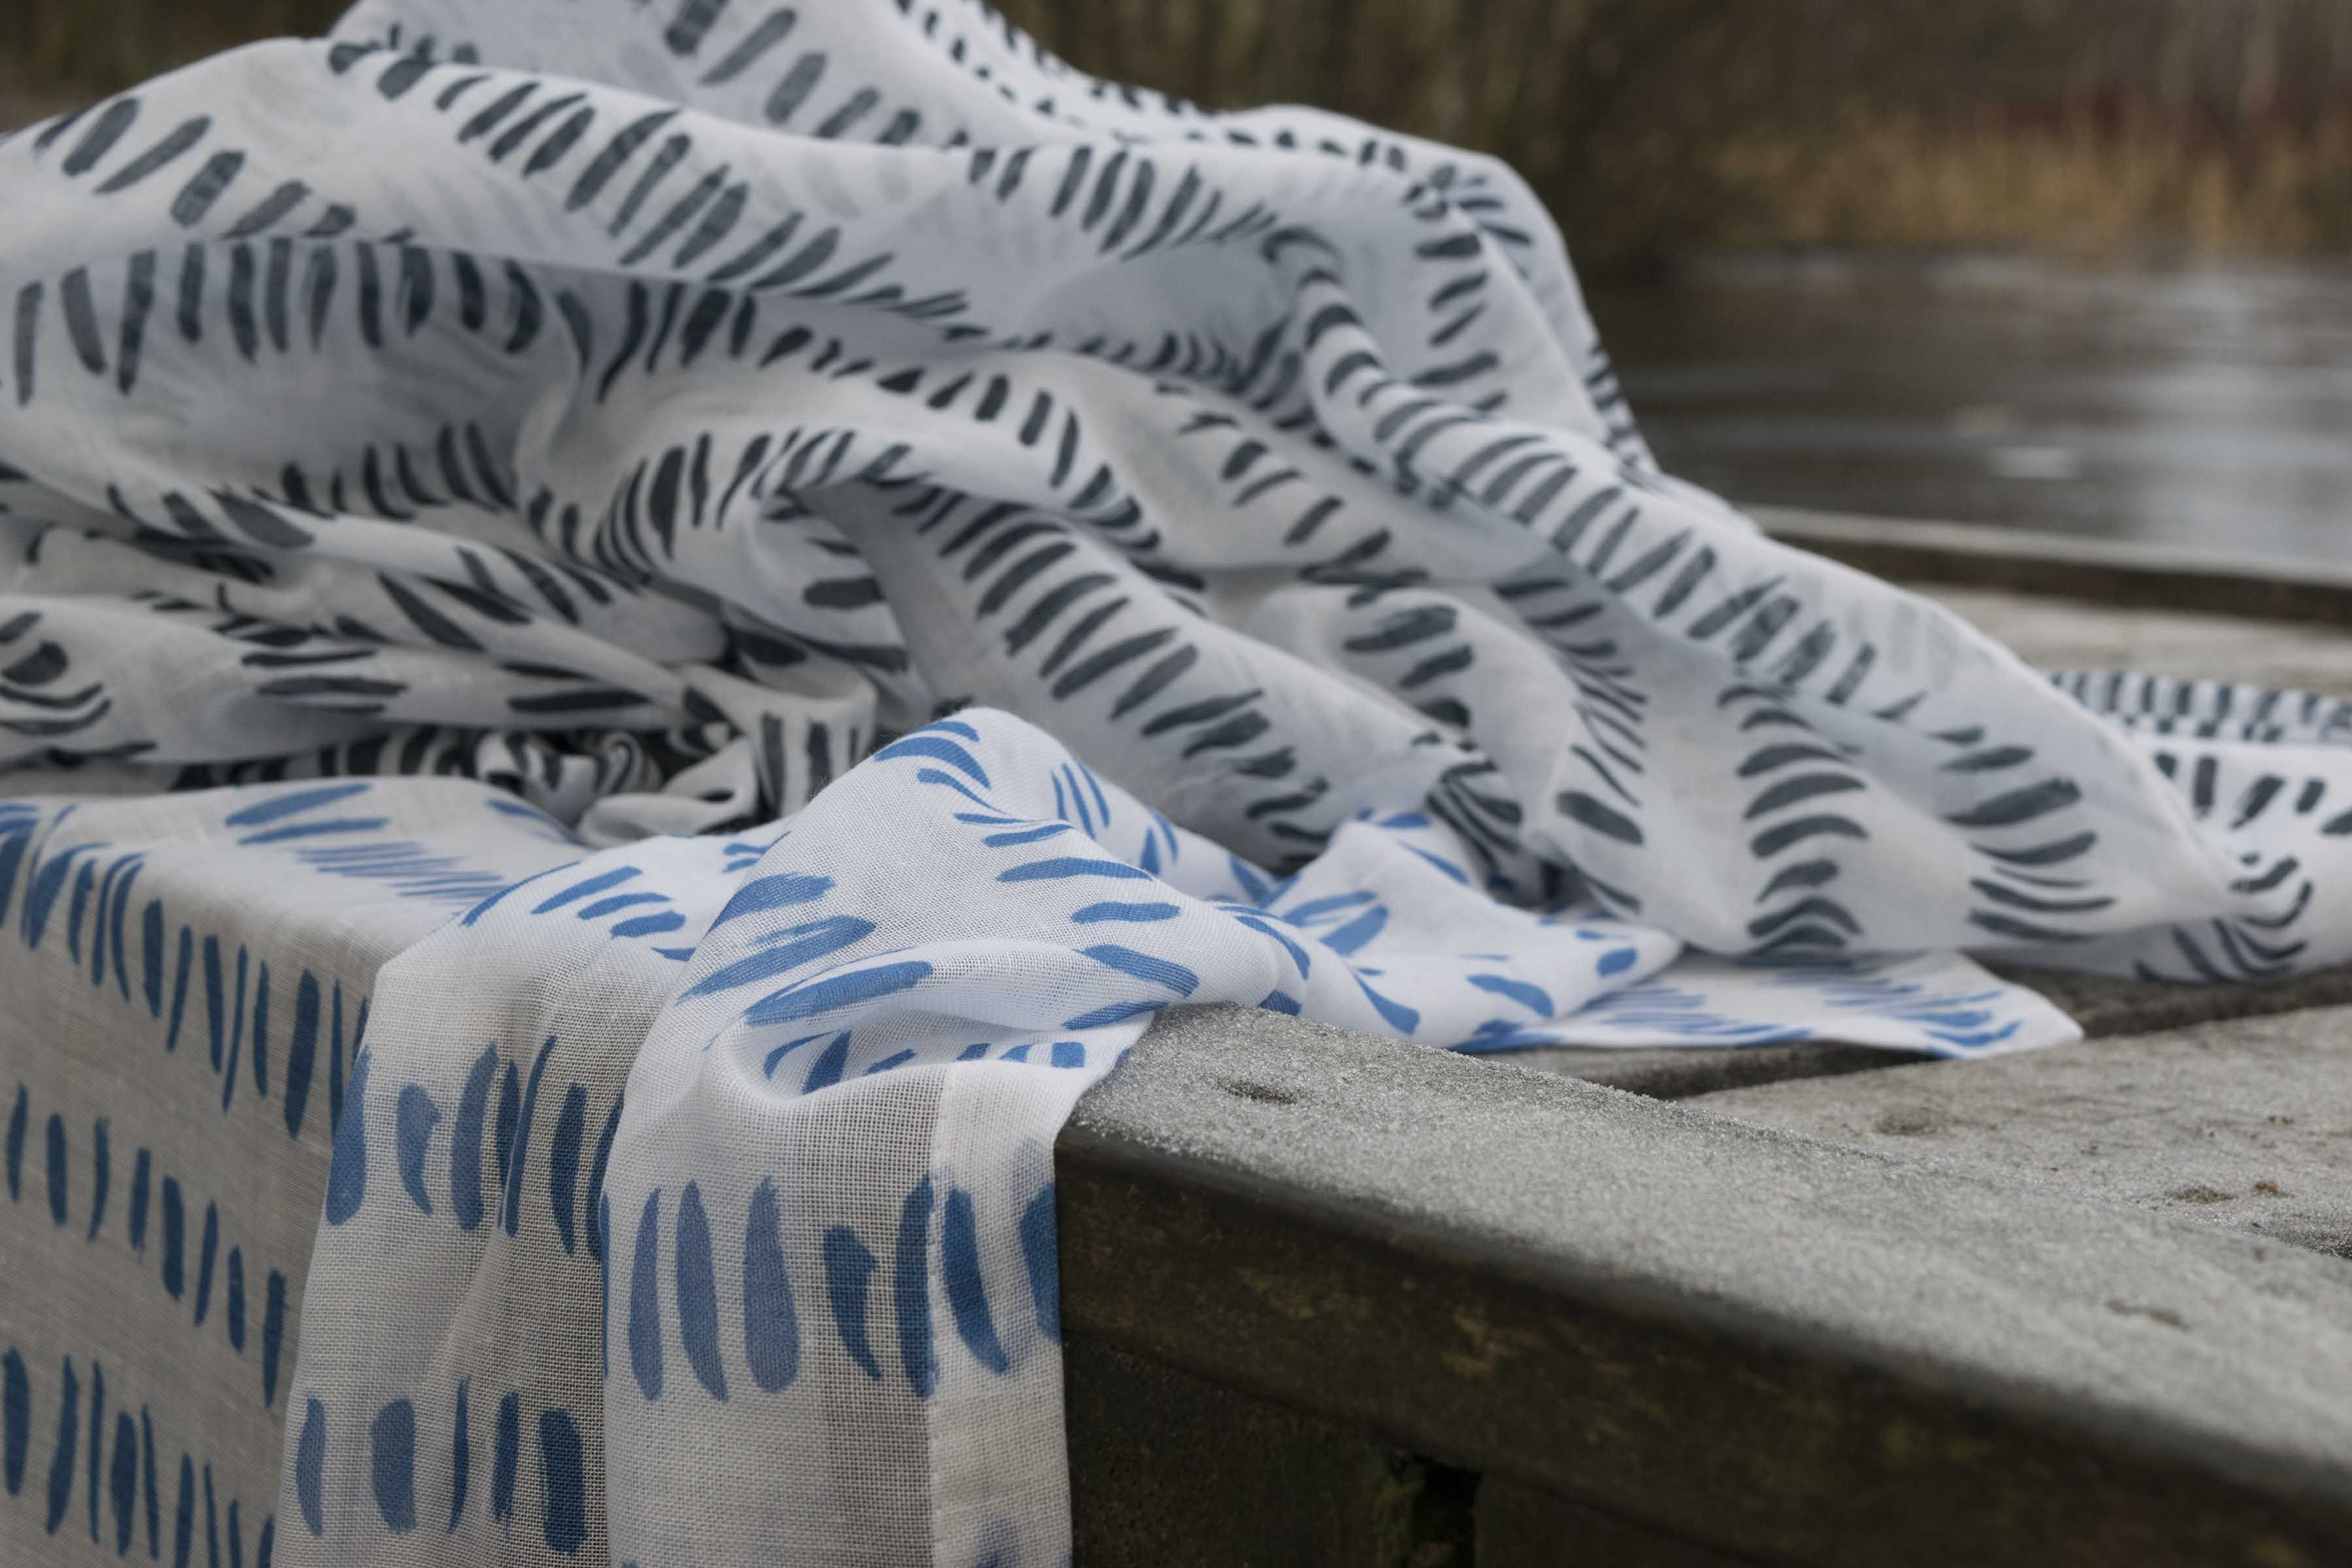 Design Strimma By Essy Winnerholt. Comes in 3 m width and is reversible.